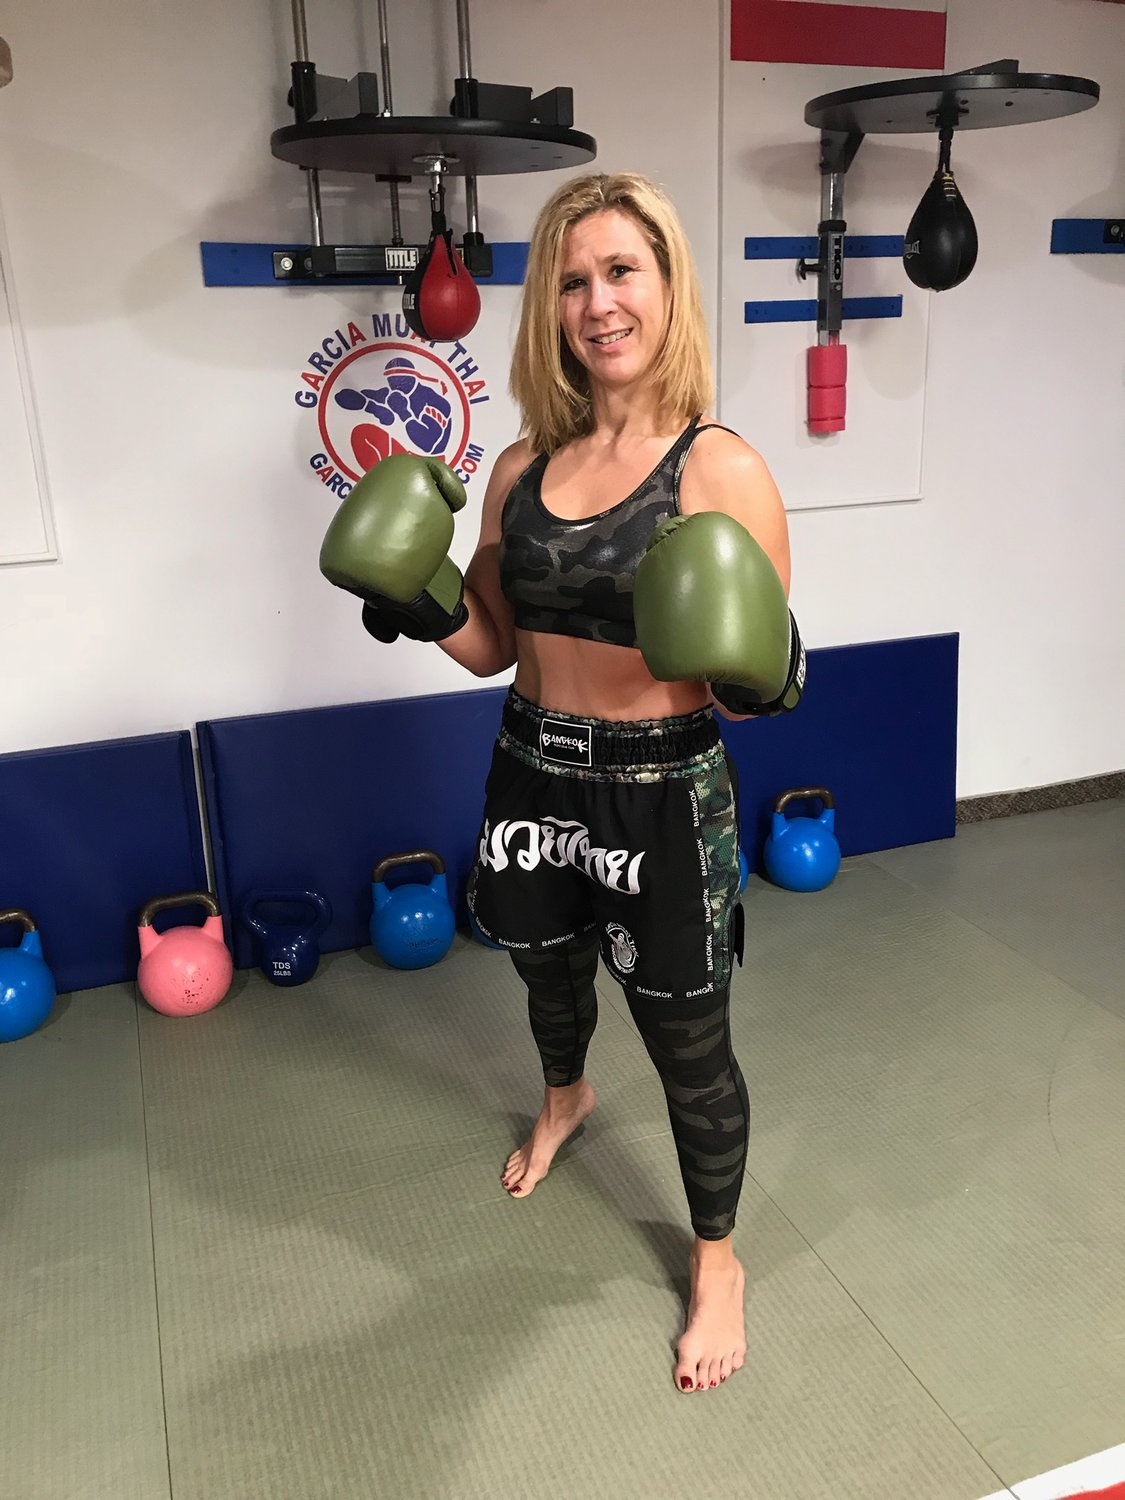 Lisa Margaritis held training sessions at Garcia Muay Thai seven days a week while also working as an instructor at a Lifetime Fitness gym and a cardiac nurse at Northwell Hospital in New Hyde Park.